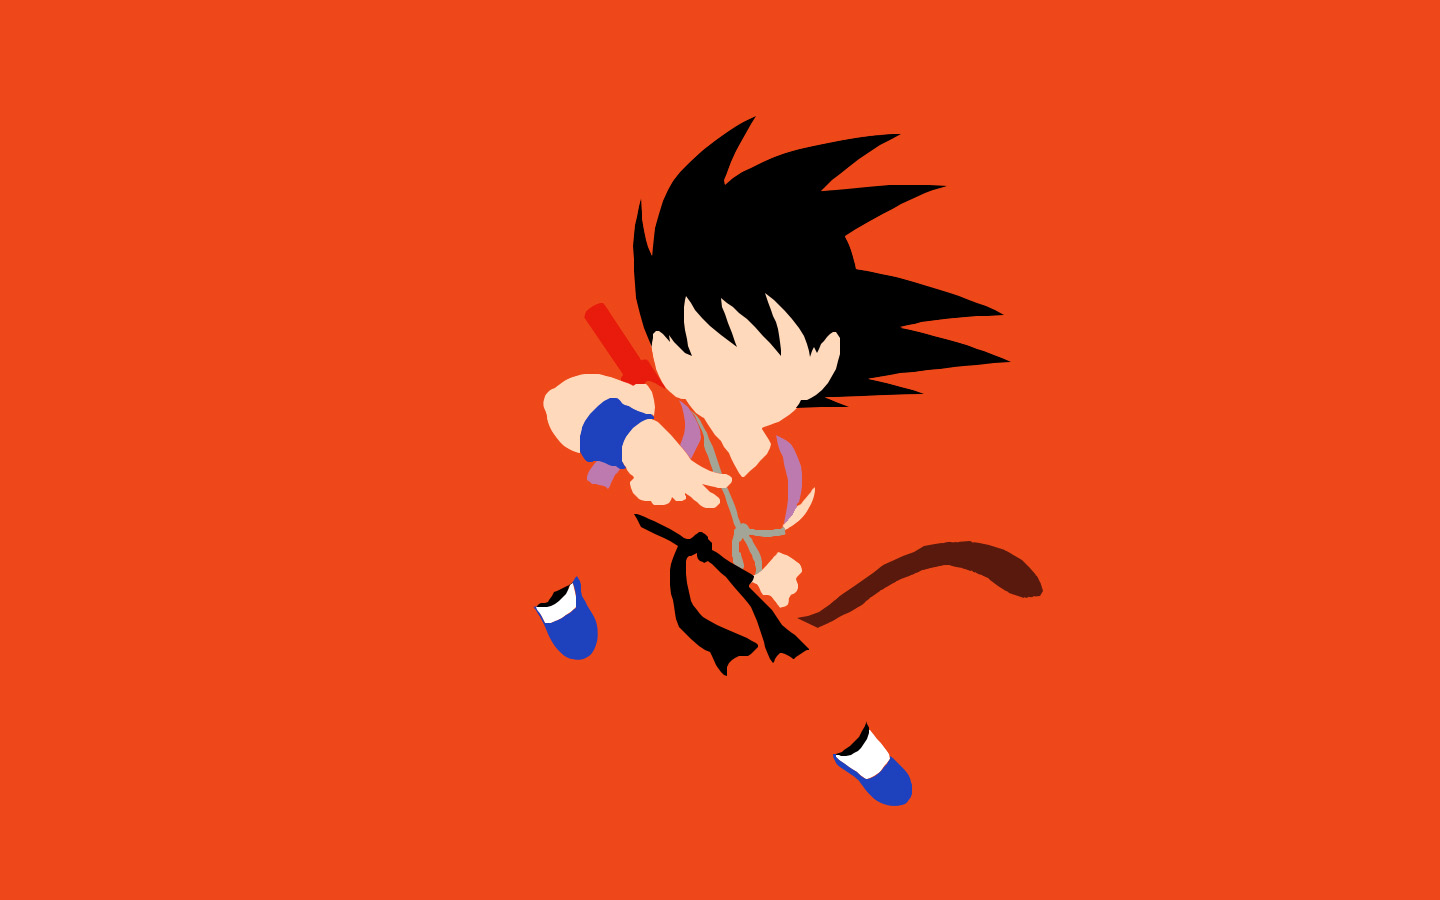 Kid Goku Wallpaper - WallpaperSafari